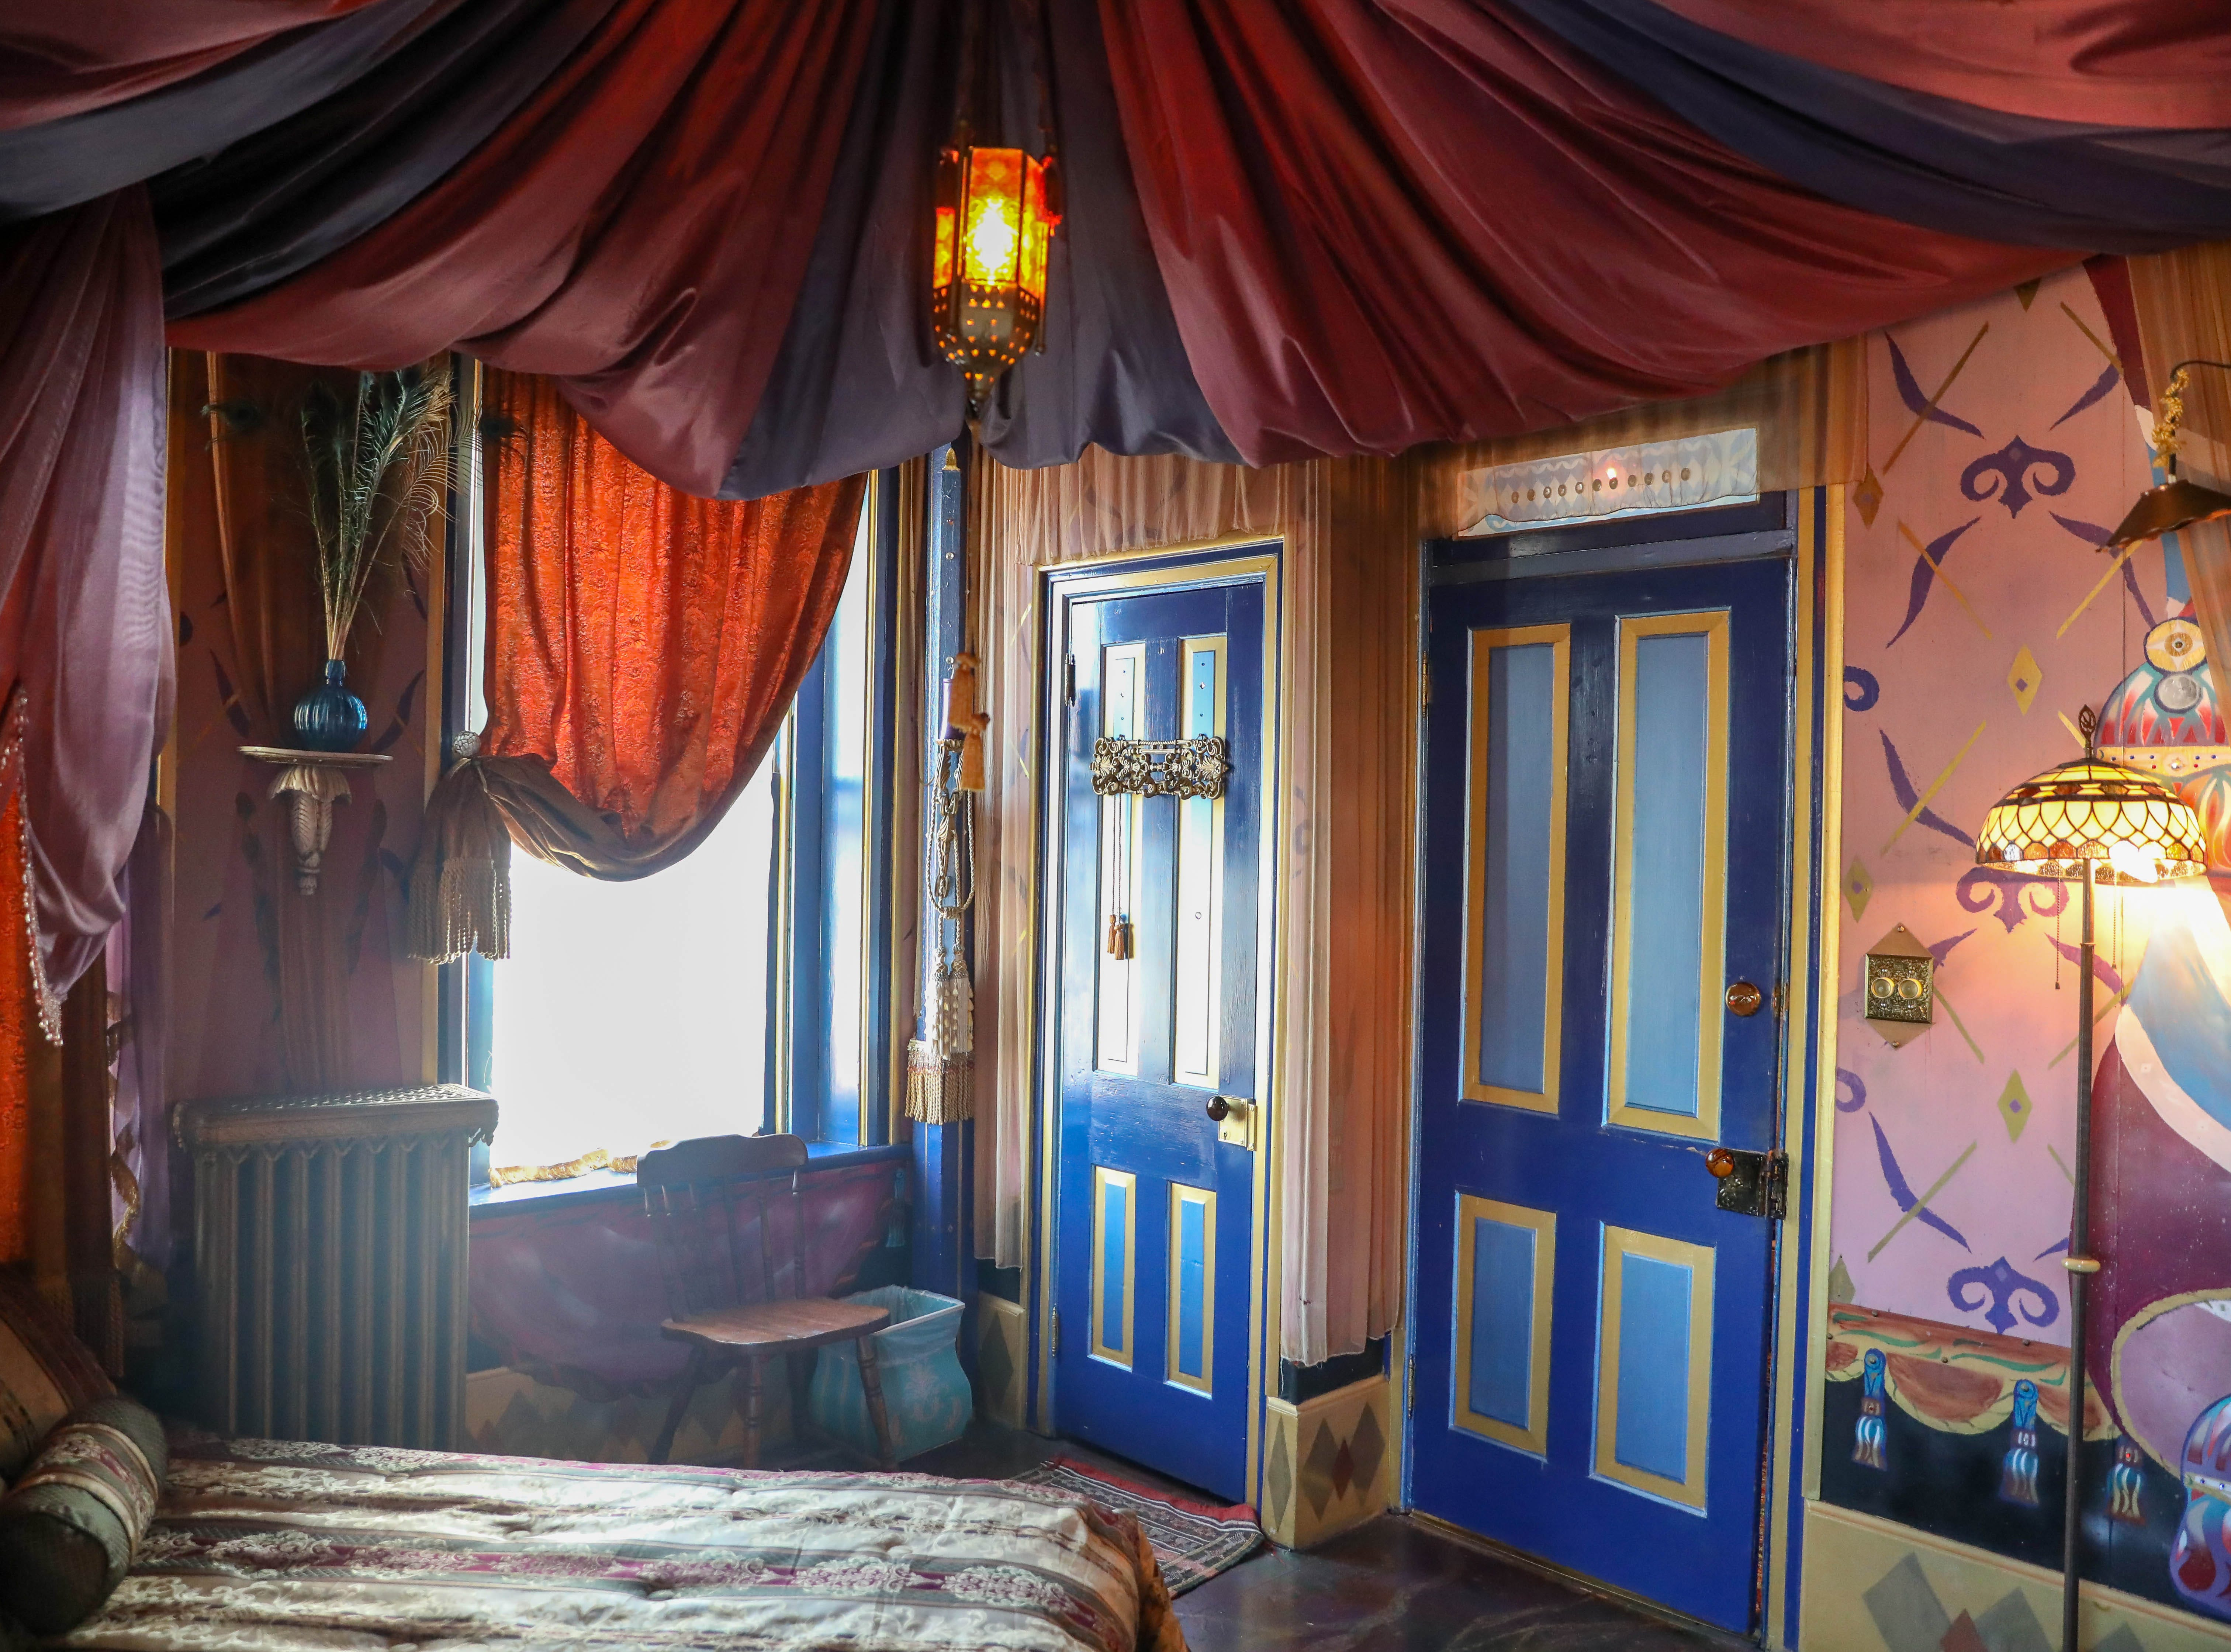 """Inside the """"Arabian Nights"""" room at Bube's Brewery. The room is one of 8 uniquely themed rooms available for patrons."""